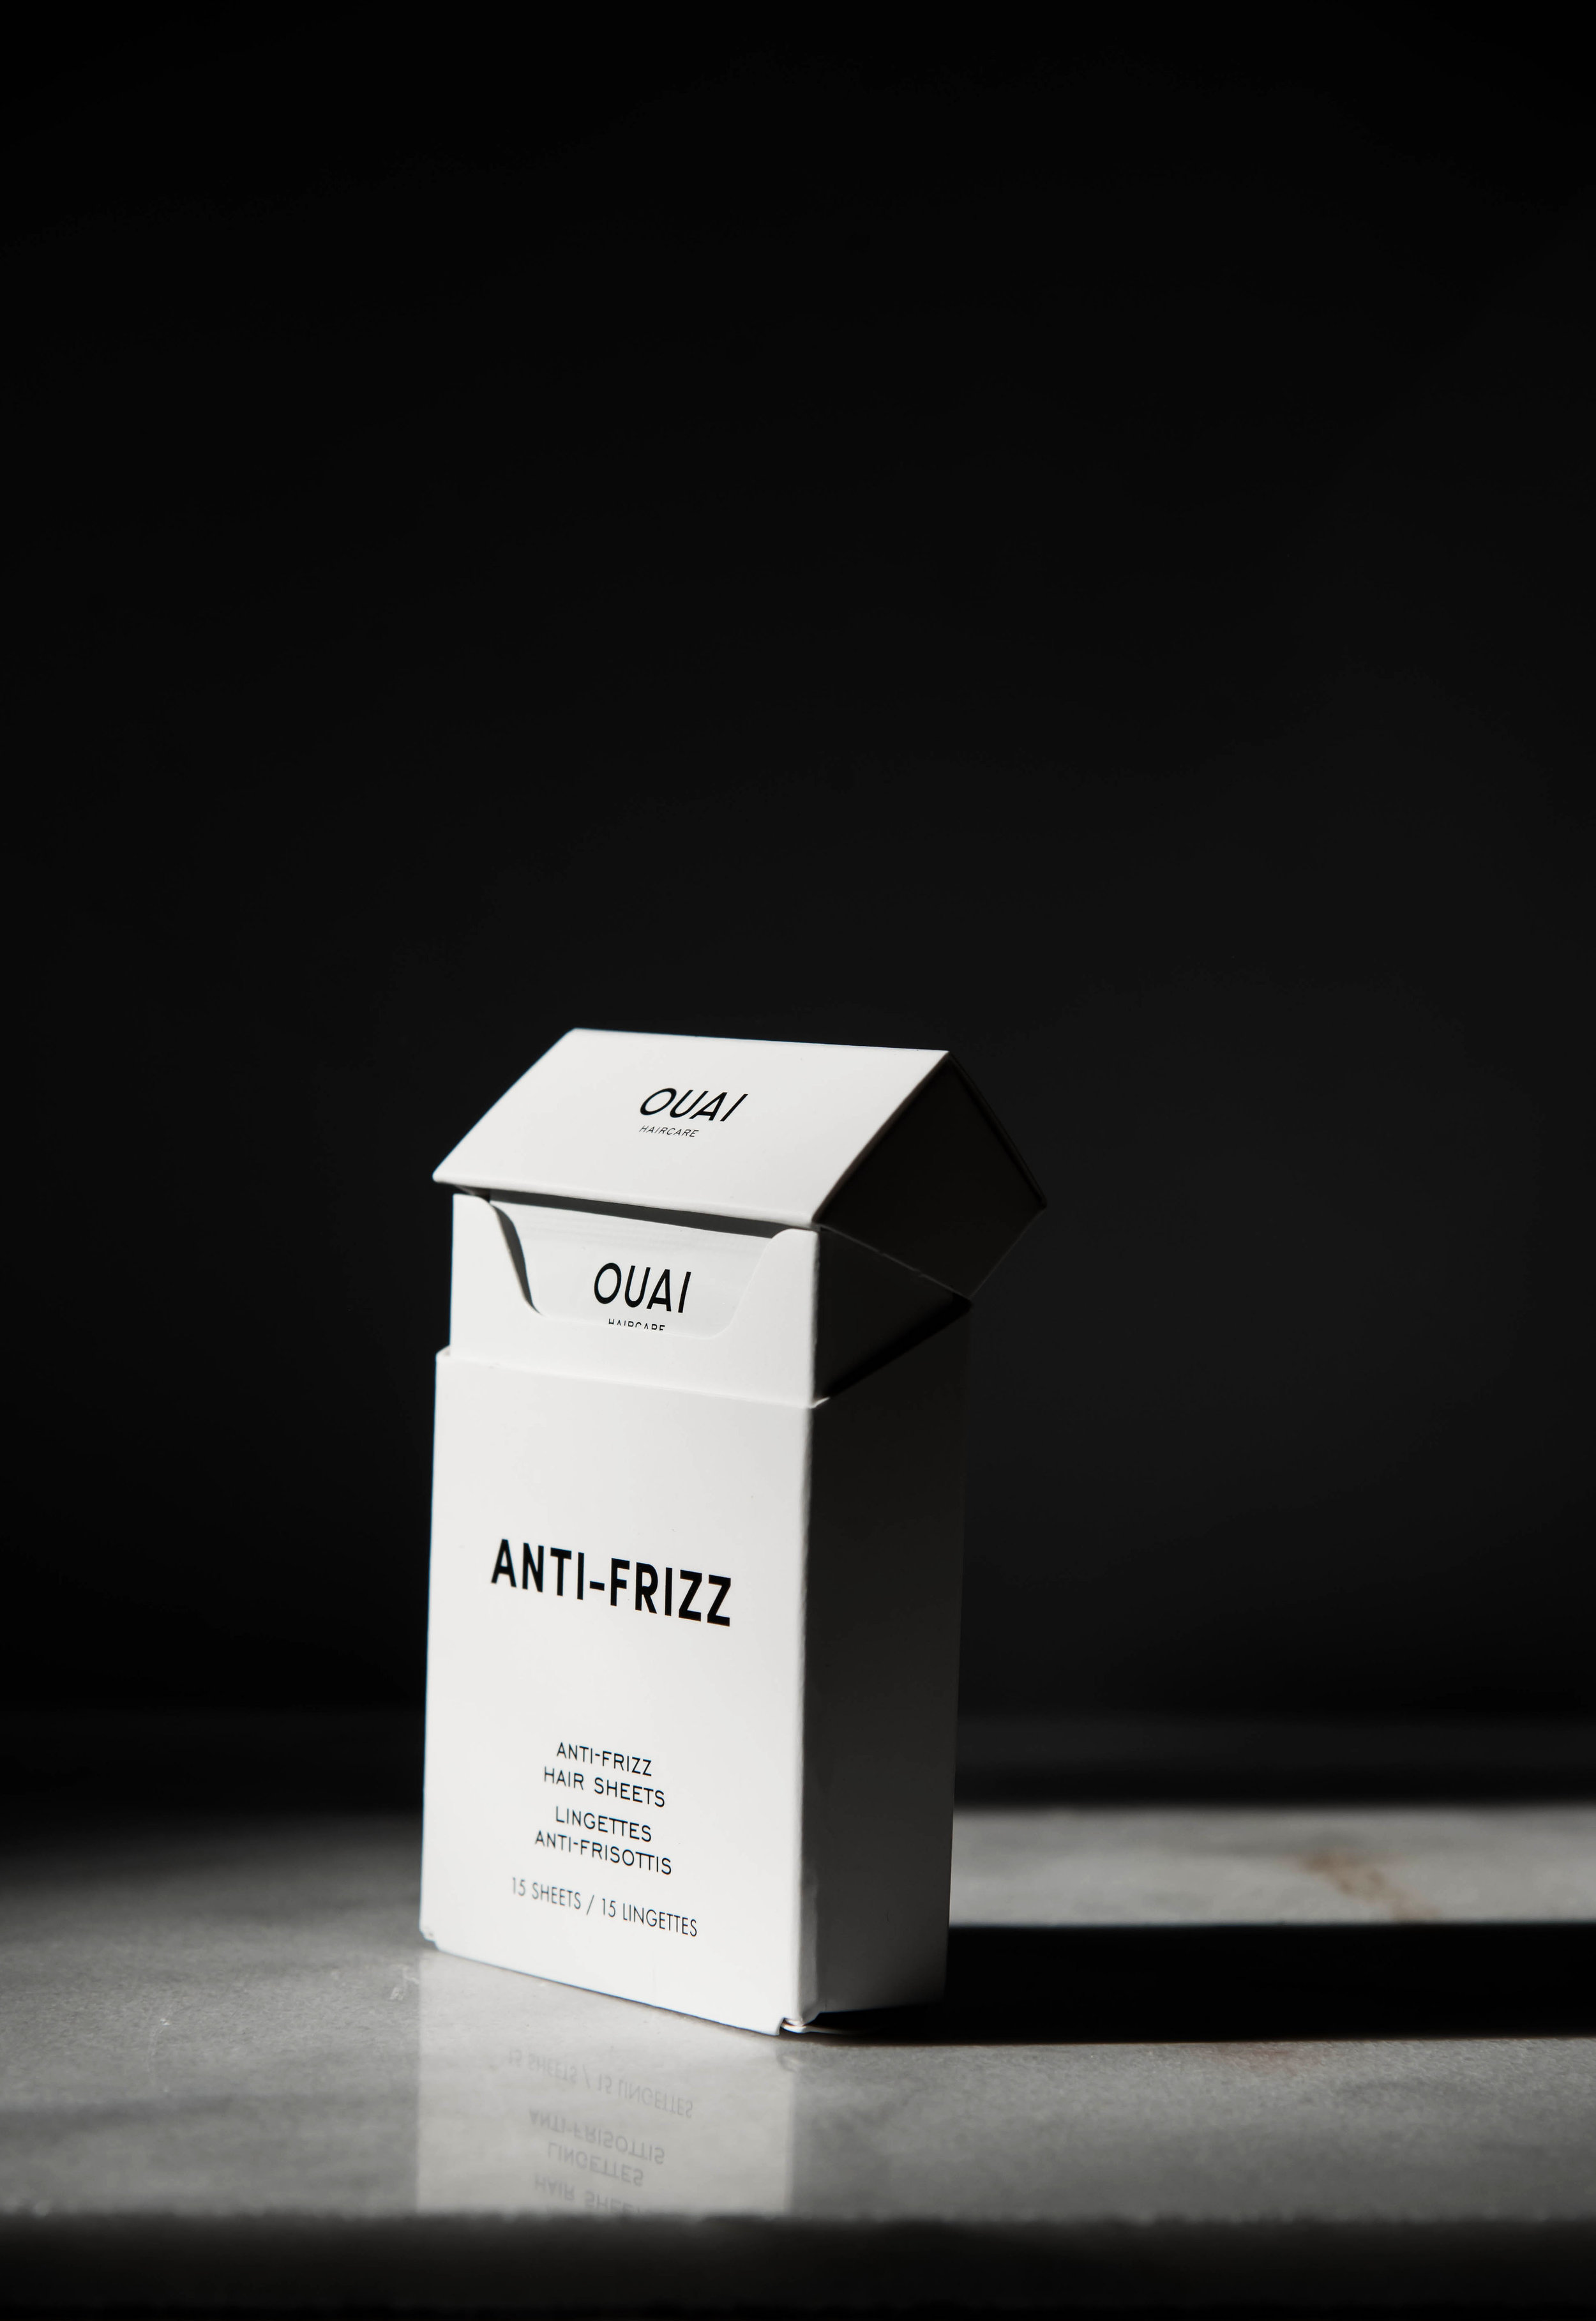 Tame Frizz A New Way - With Ouai's New Anti-Frizz Hair Sheets